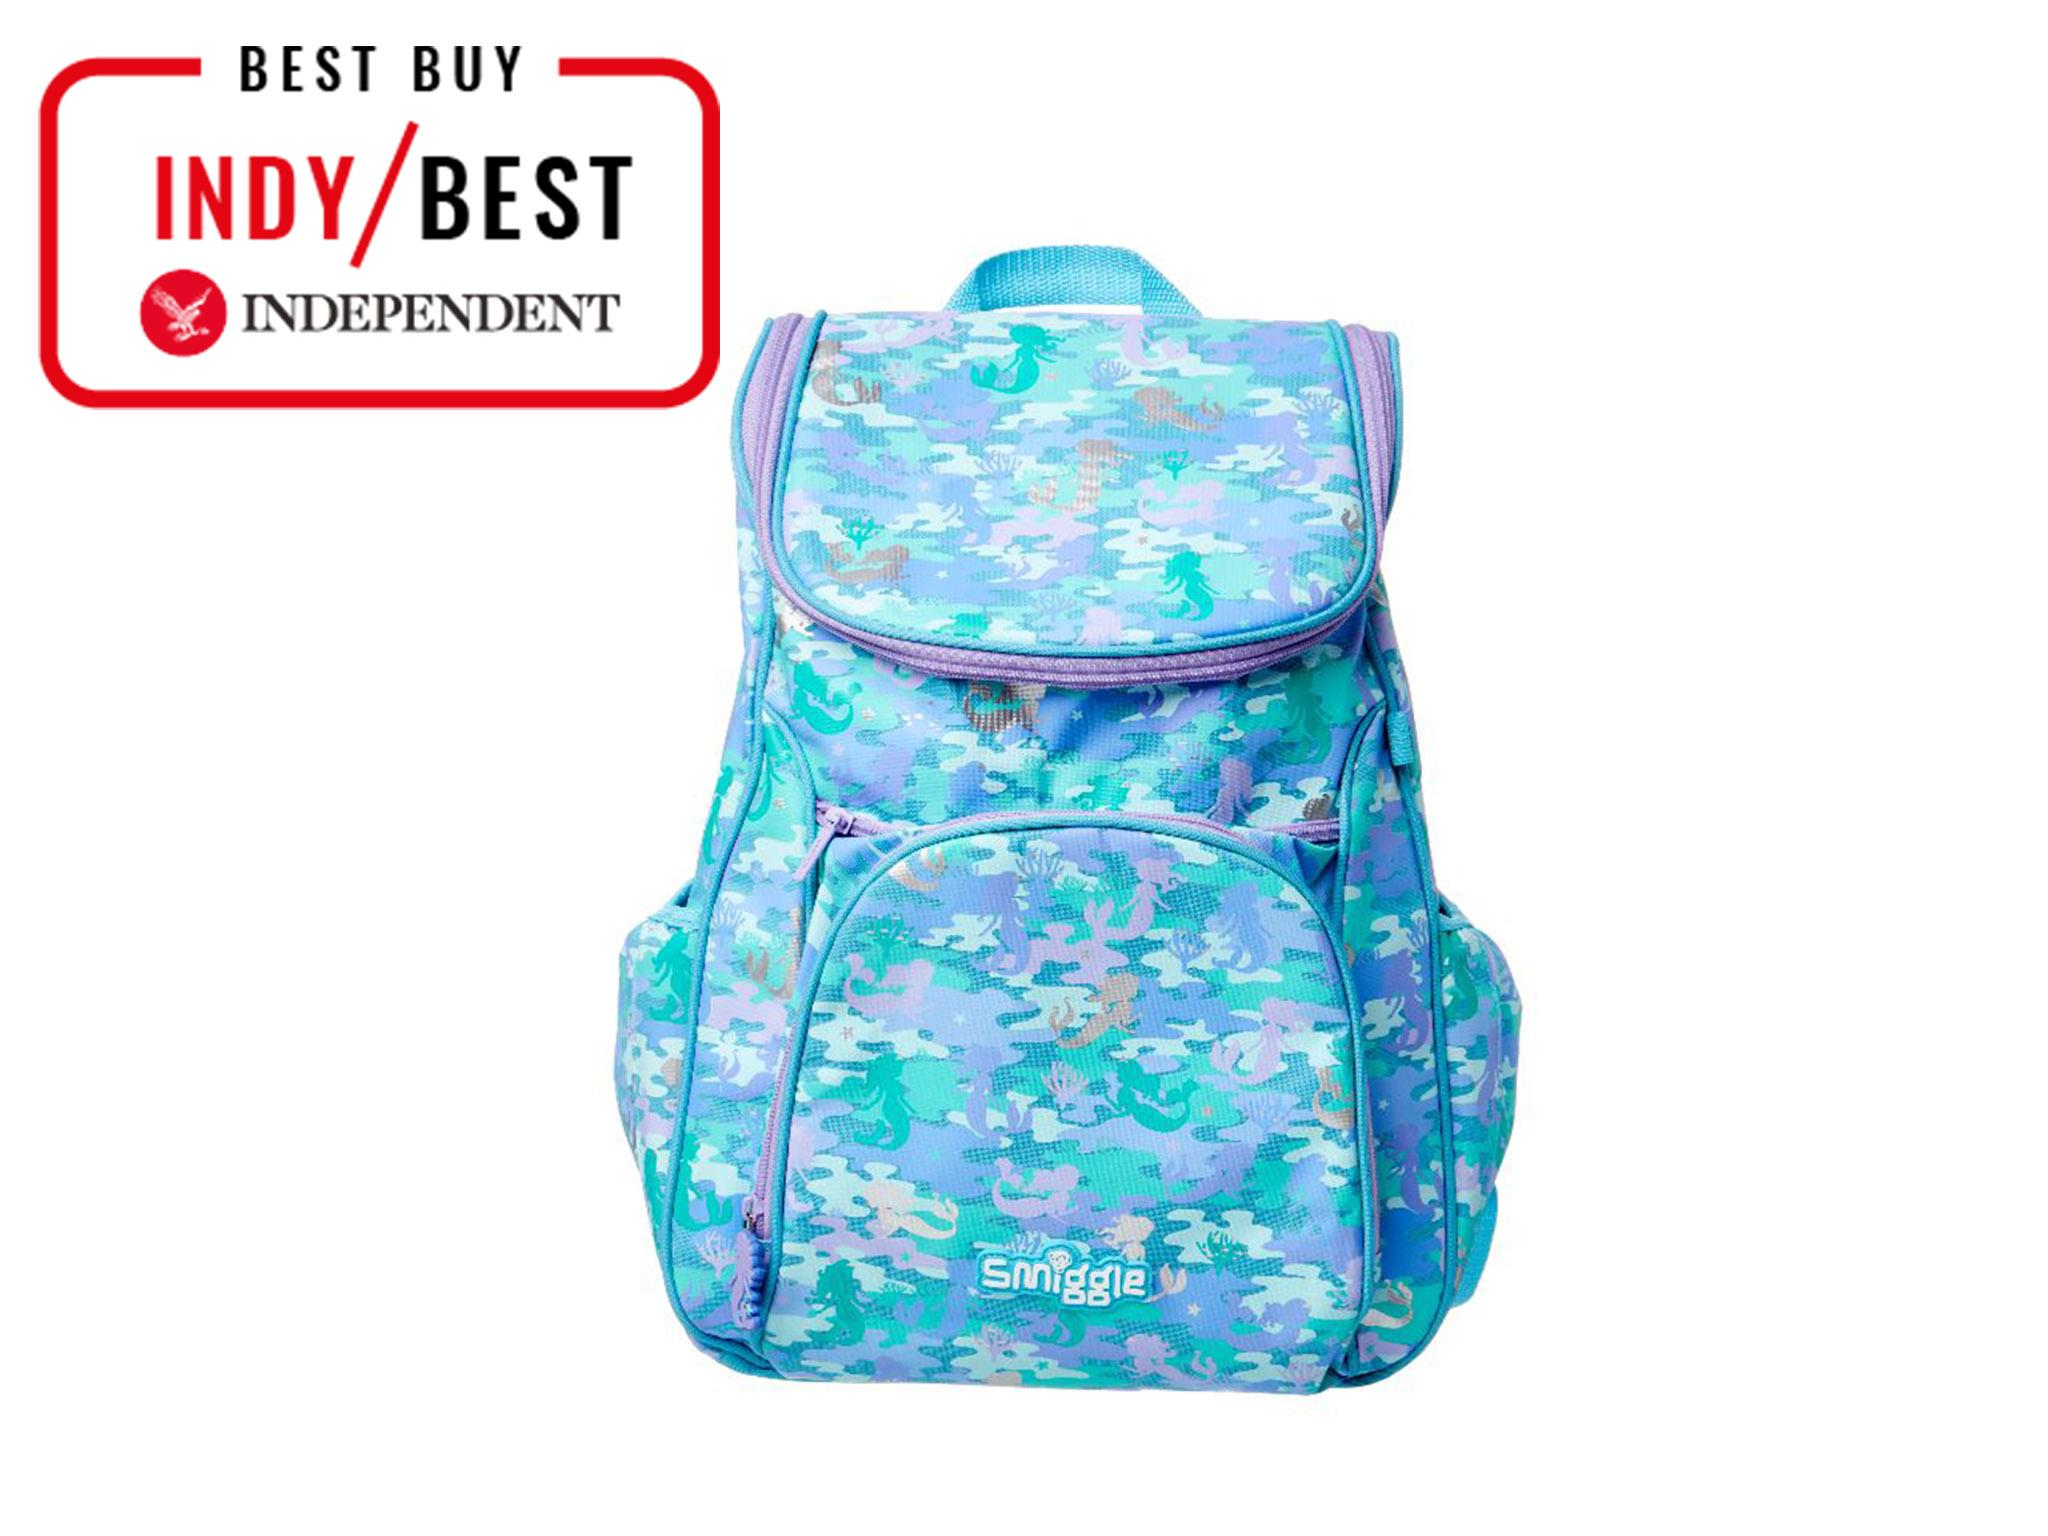 c5f2547d2dc4 All the testers loved this backpack from Aussie stationery brand Smiggle.  They adored the design